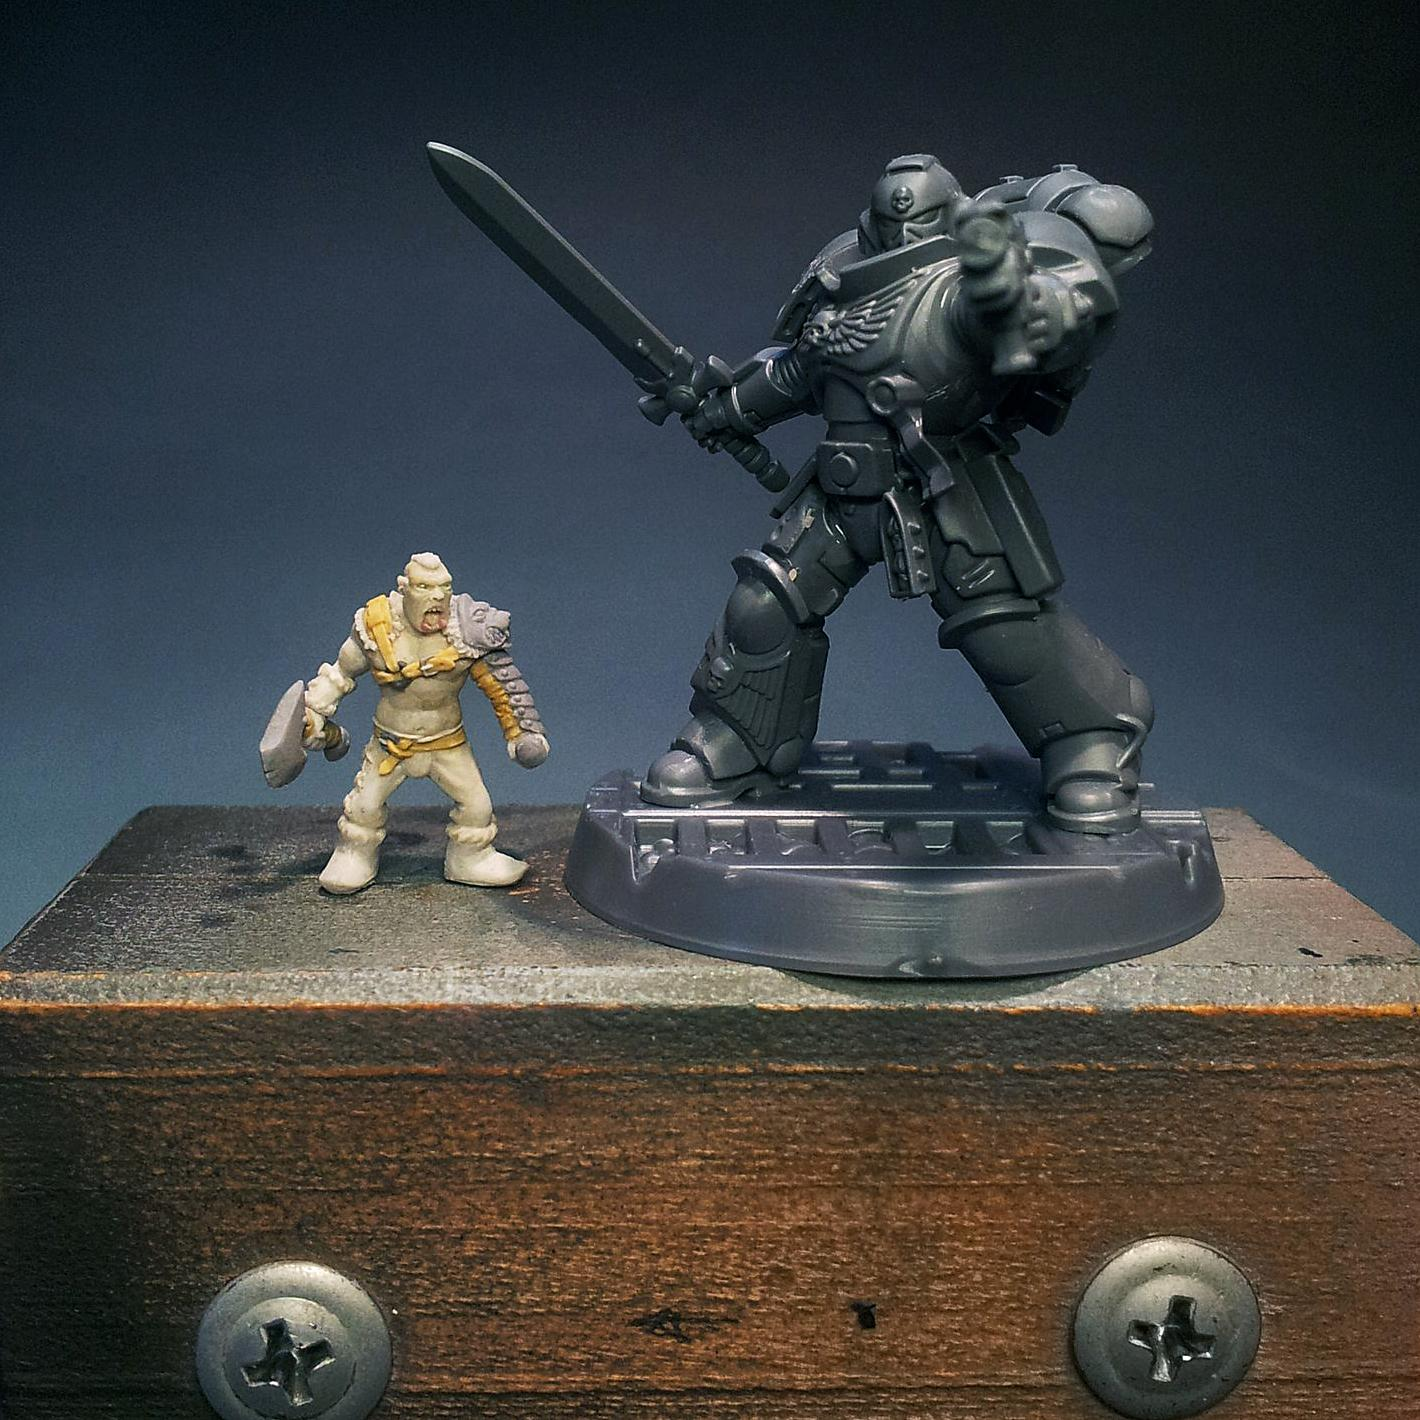 1/100 Scale, Handmade, Magicsculpt, My Way Miniatures, Myway, Orcs, Primaris, Sculpting